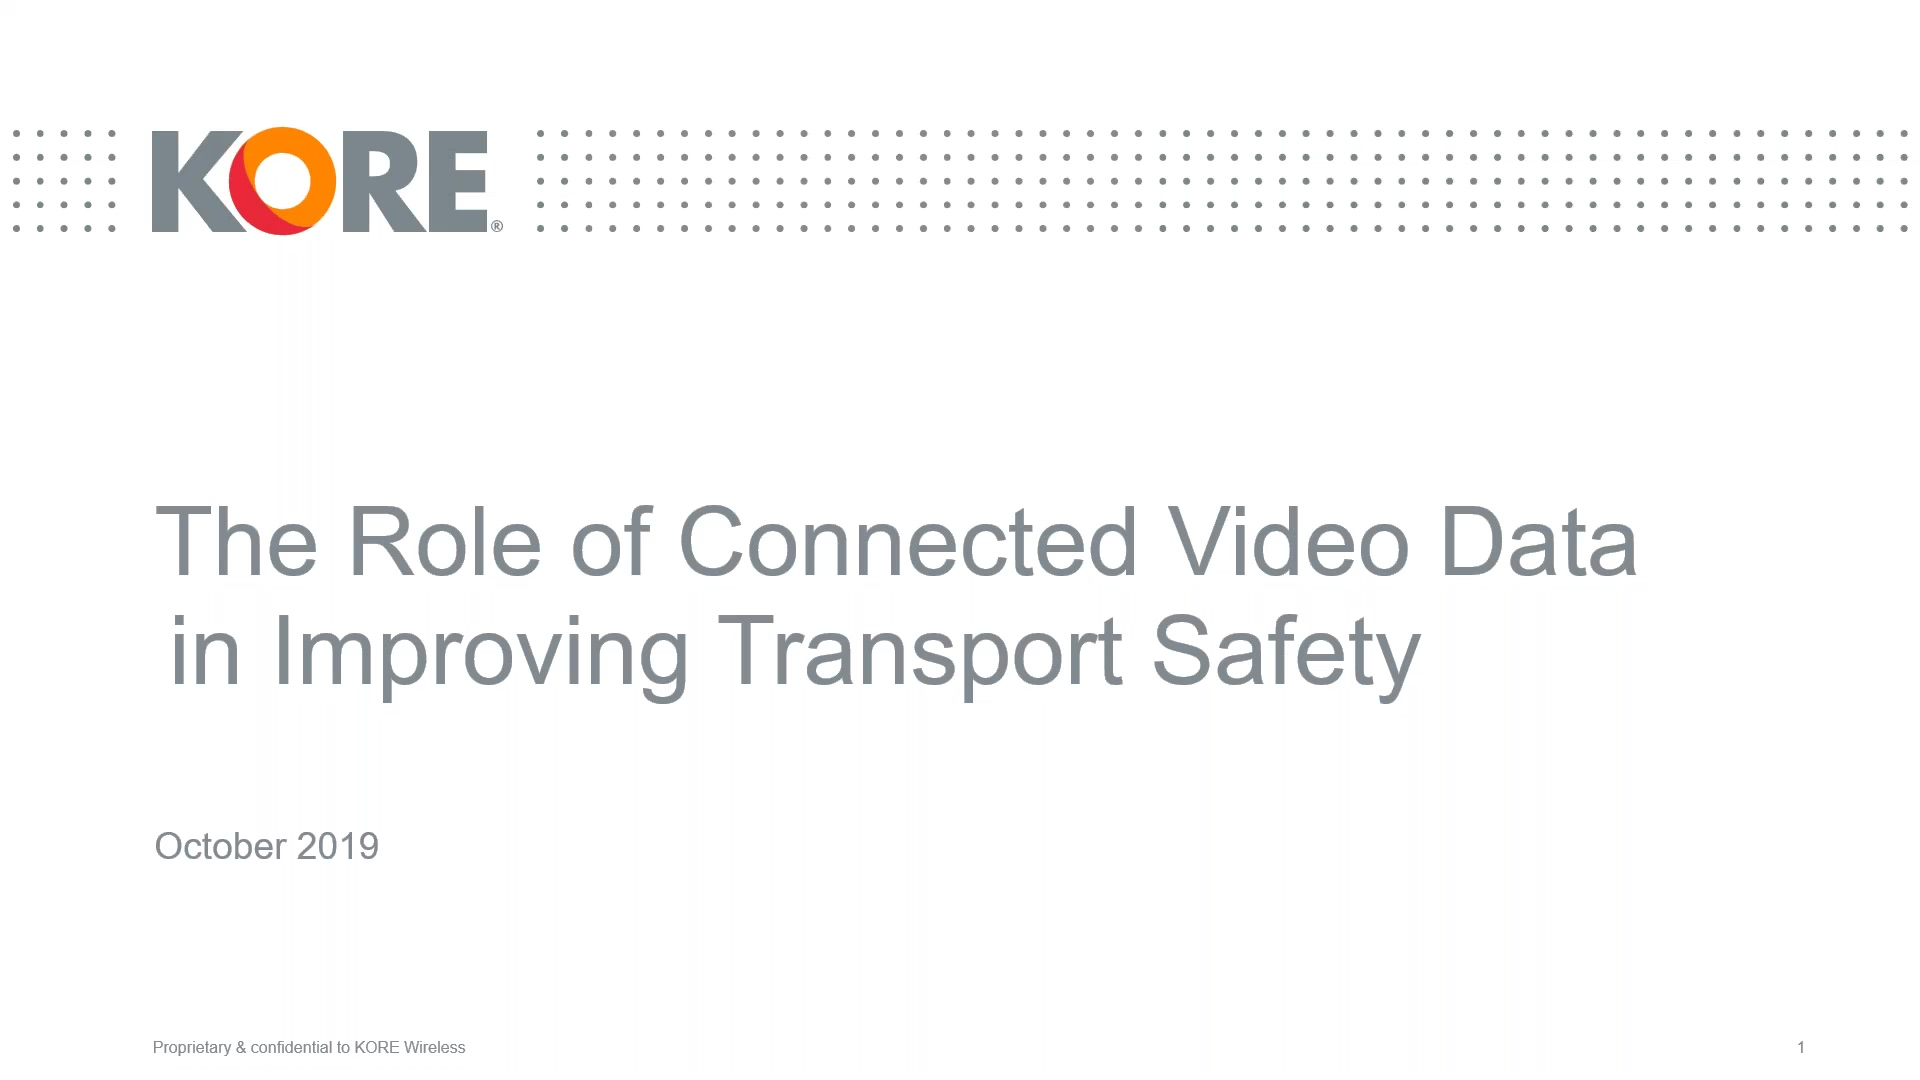 The role of connected video data in improving transport safety